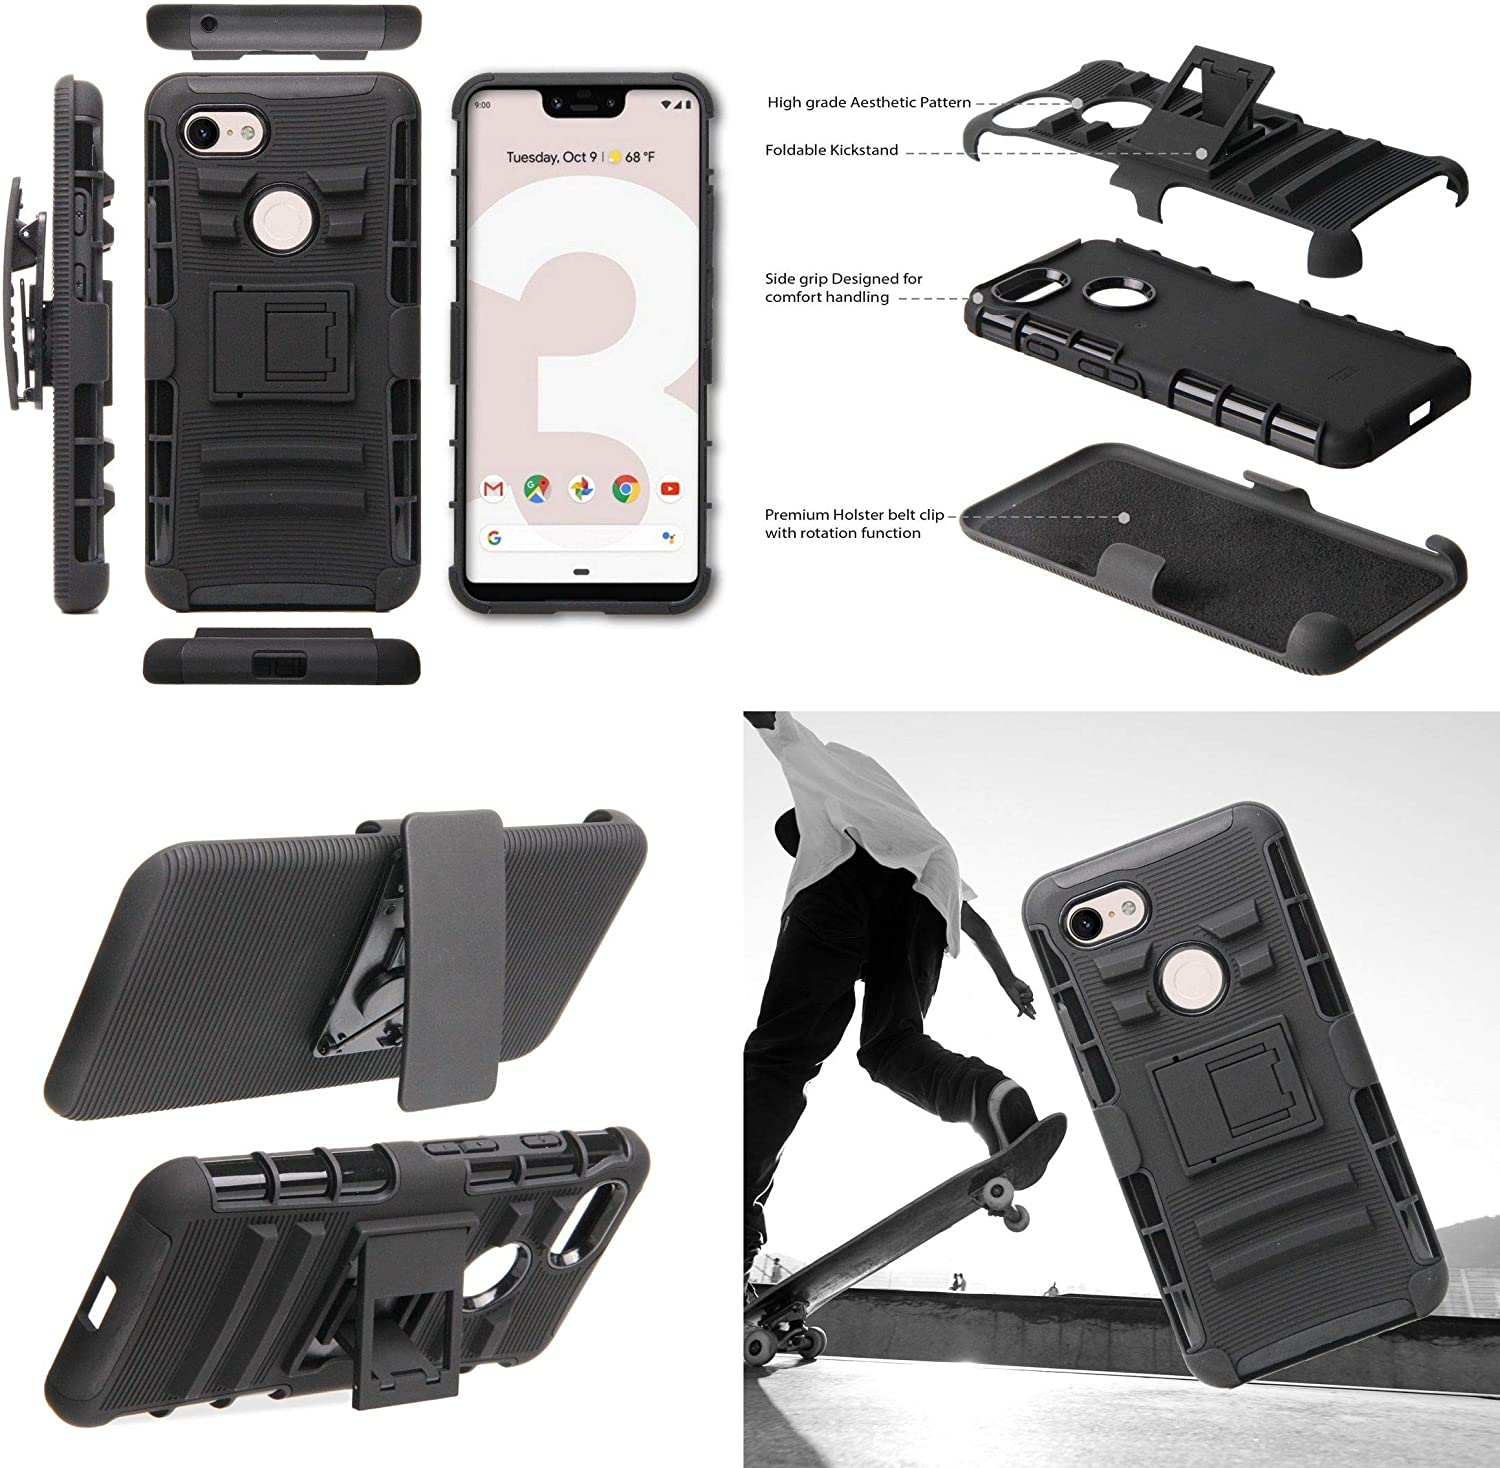 Tempered Glass Screen Protector and Atom Cloth Purple Nebula BC Rugged Series Compatible with Google Pixel 3 XL Case Bundle with Heavy Duty Armor Cover with Belt Clip Holster